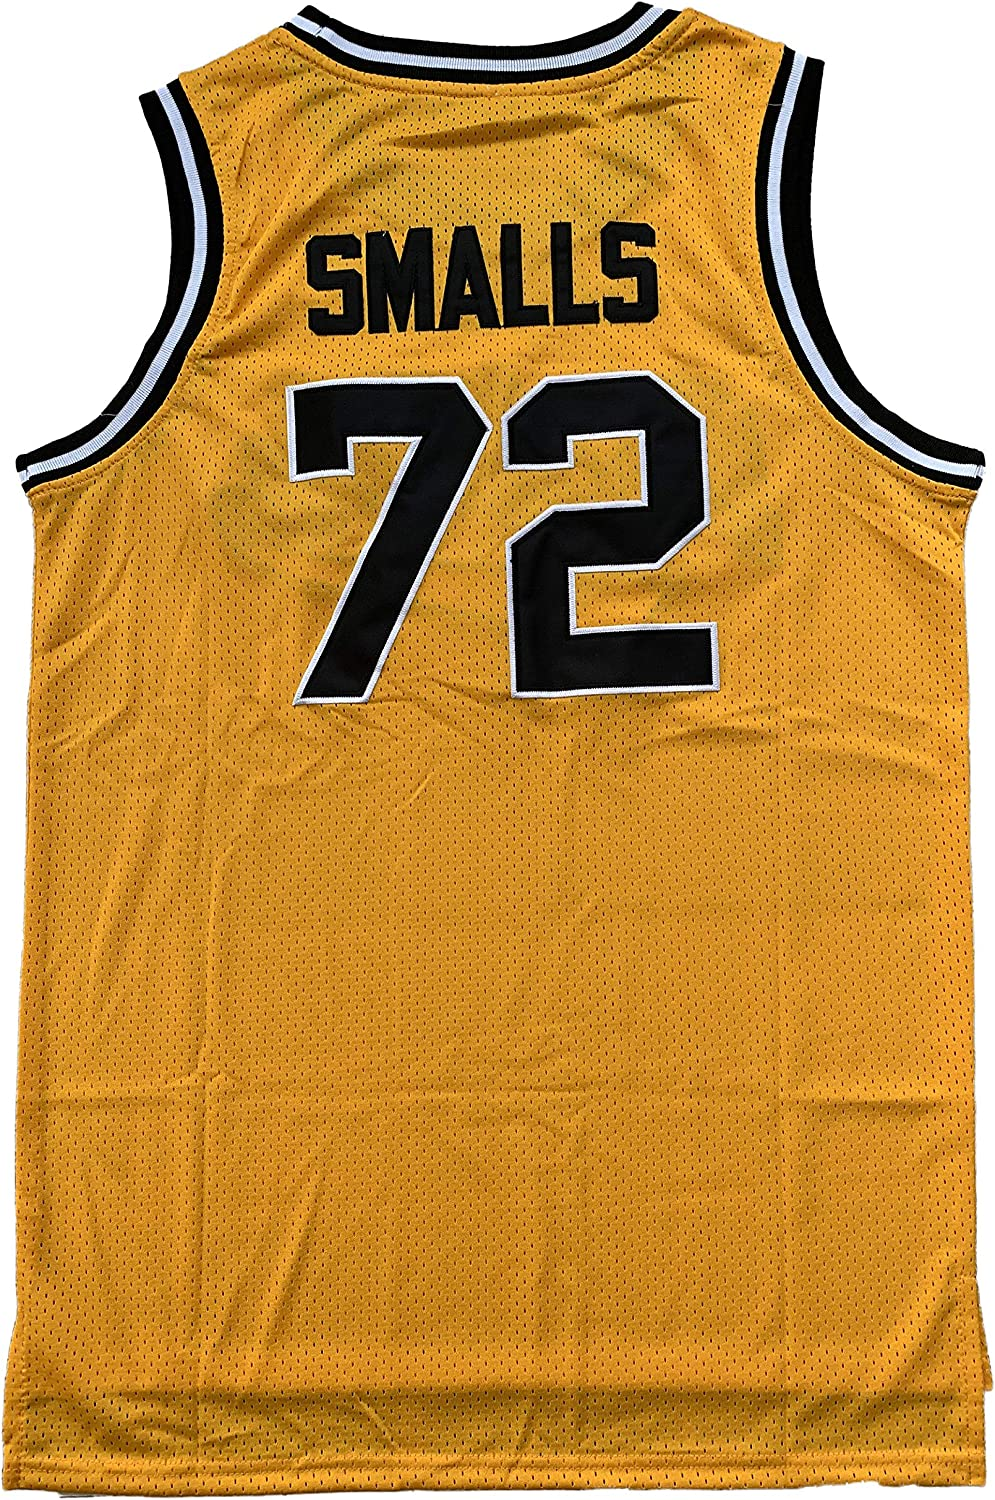 vinking Stitched BadBoy #72 Biggie Smalls Movie Notorious Big 90s Hip Hop Clothes for Party Men Basketball Jersey